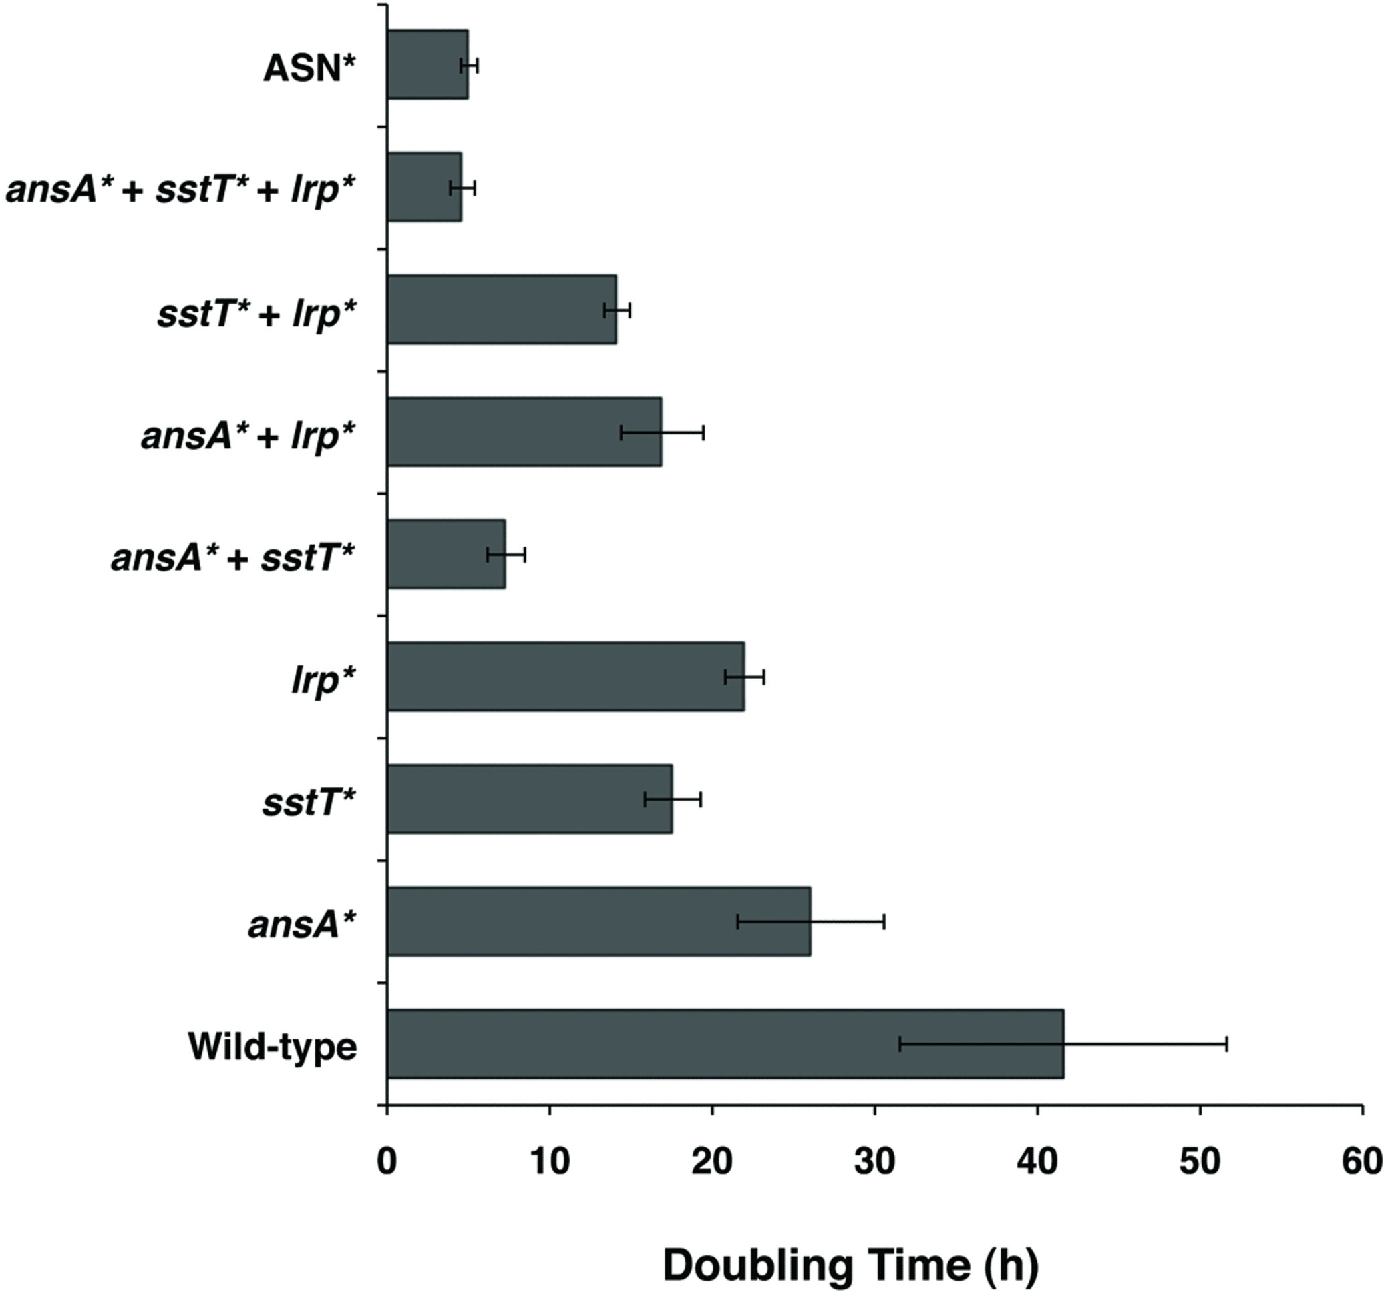 Figure 3. Validation of discovered mutations in ASN*